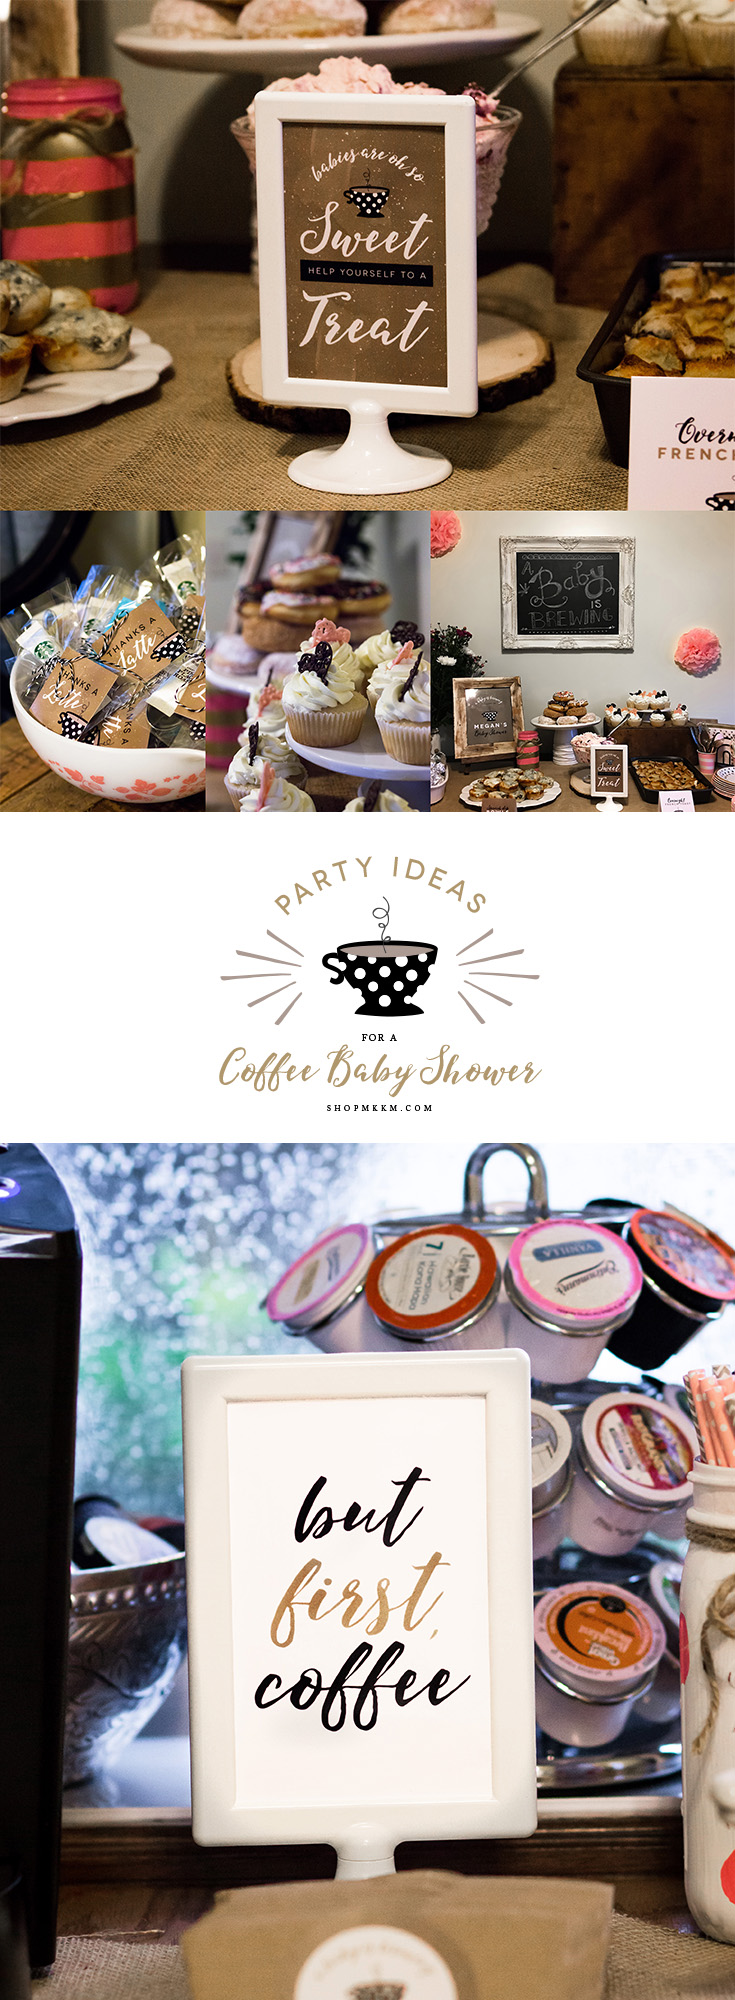 Party ideas for a coffee baby shower. Grab some decor ideas and a free editable coffee sticker on the blog. // shopmkkm.com